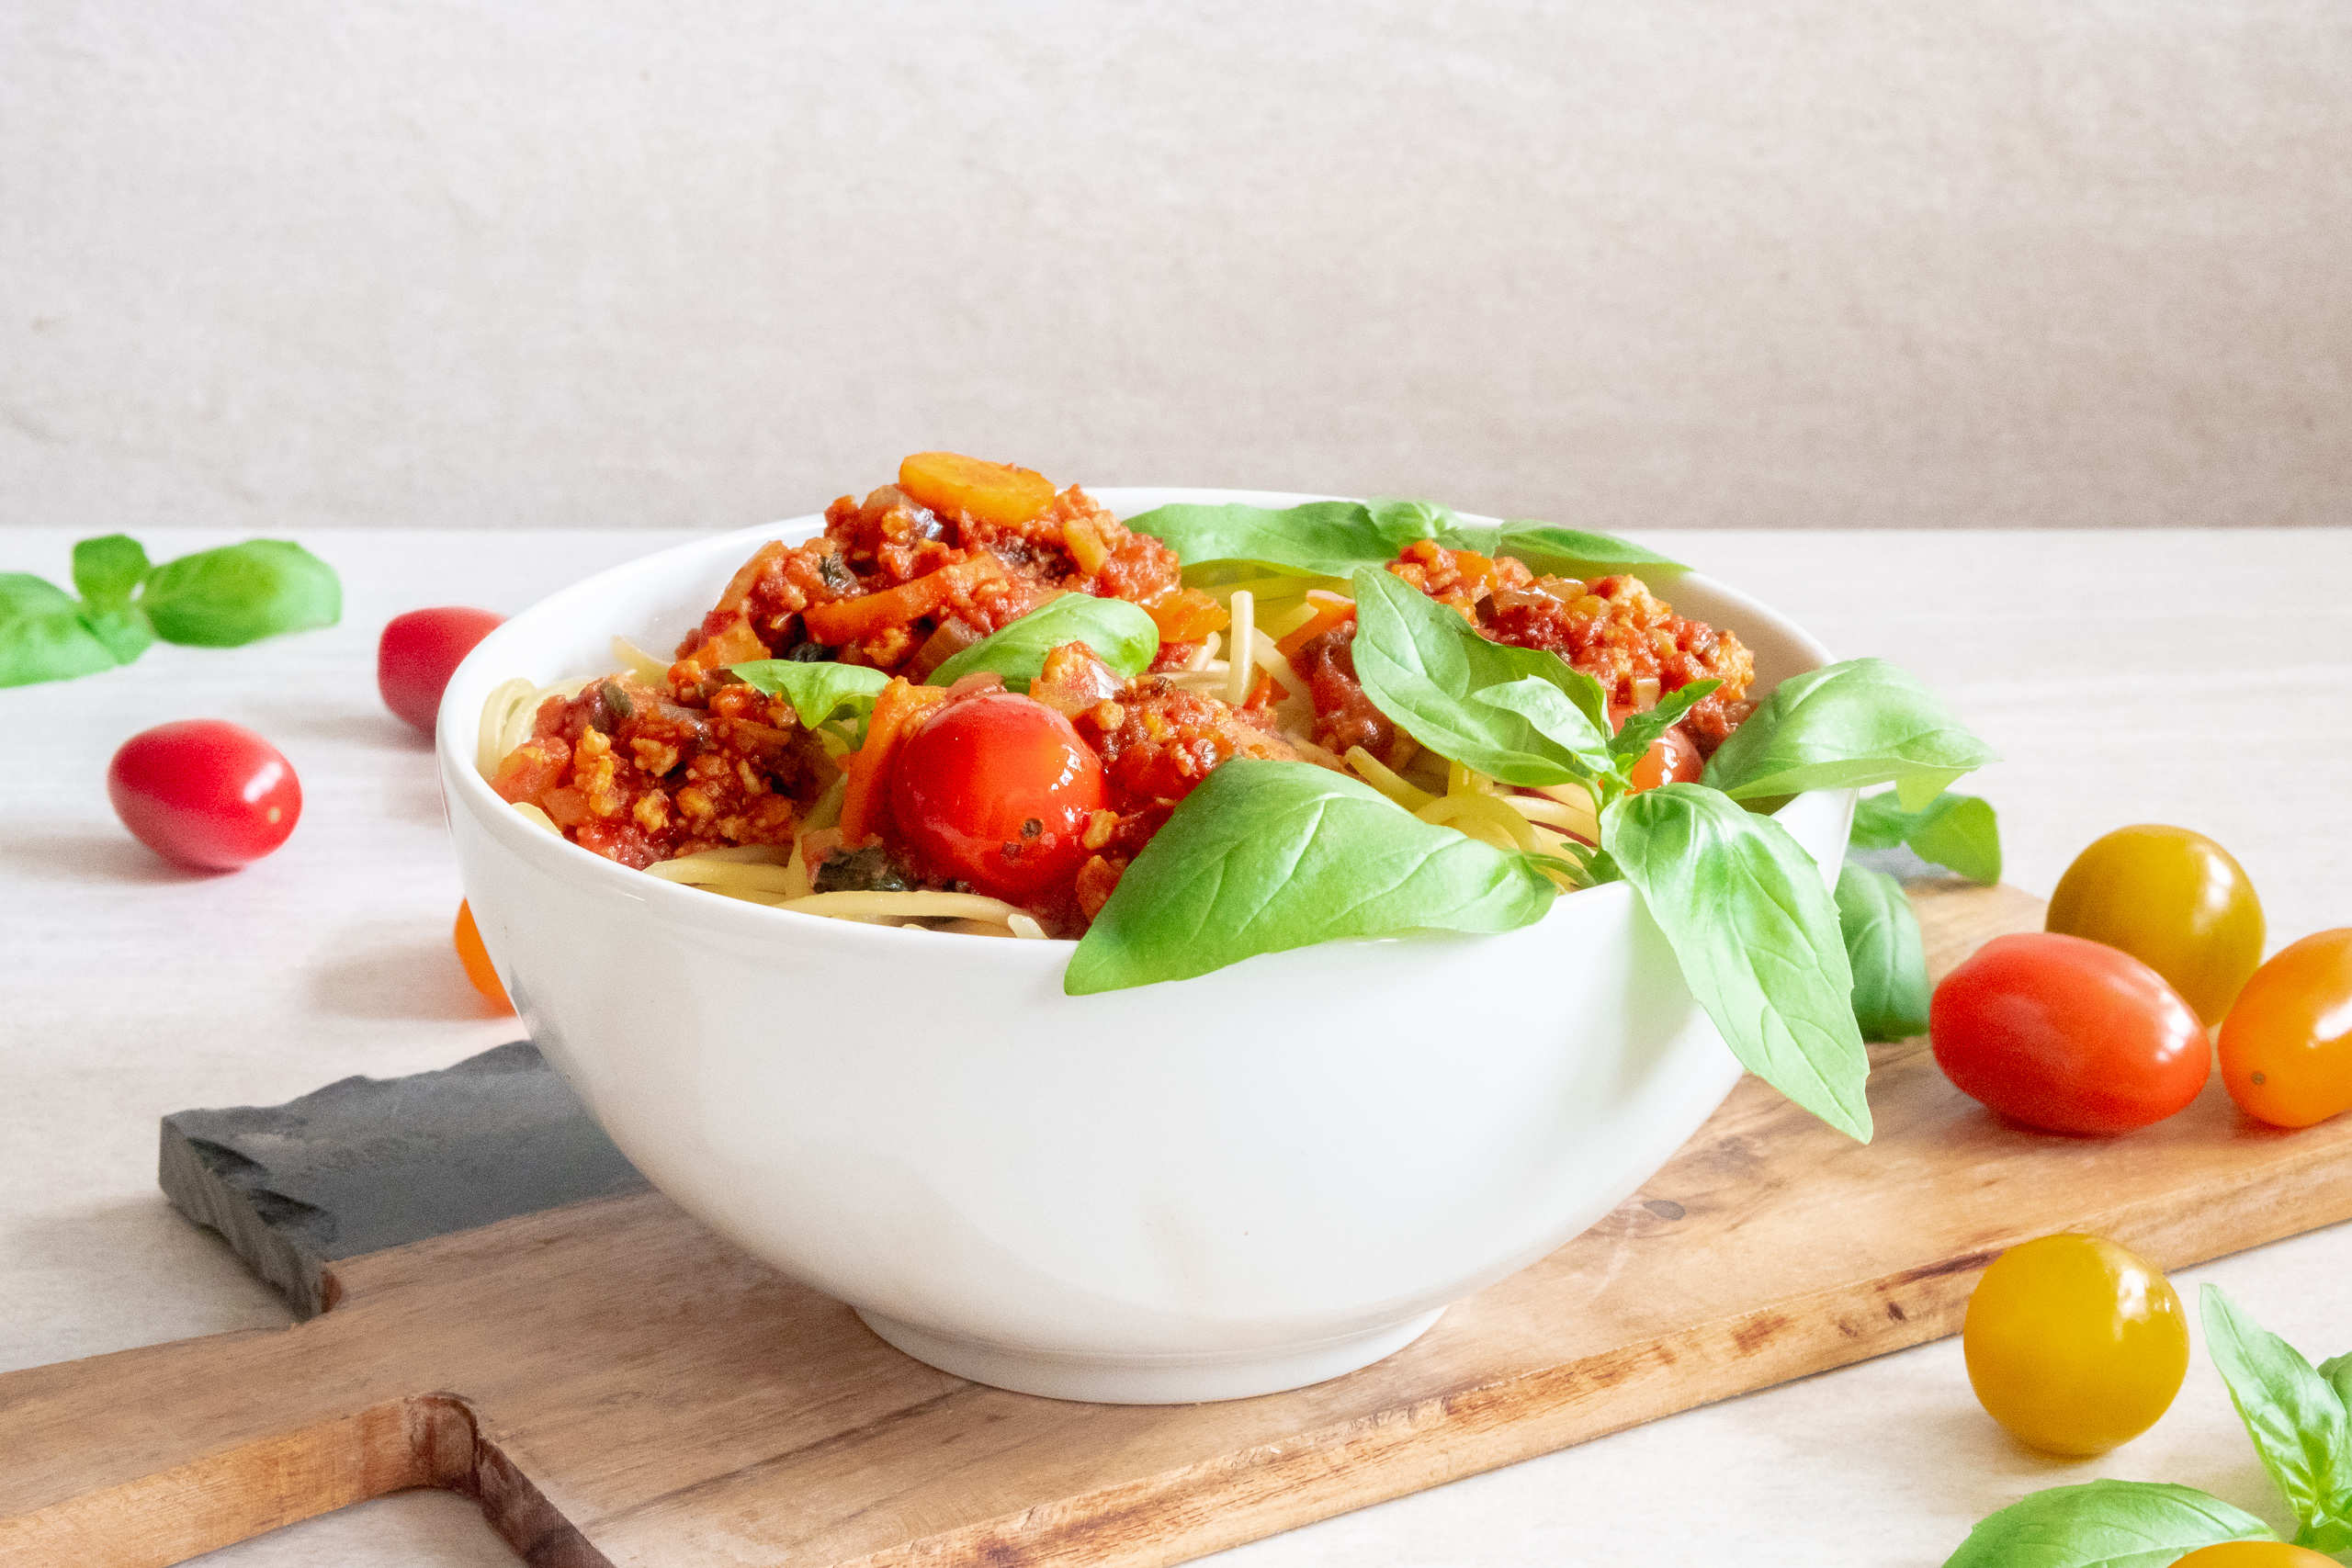 Vegan bolognese with tofu